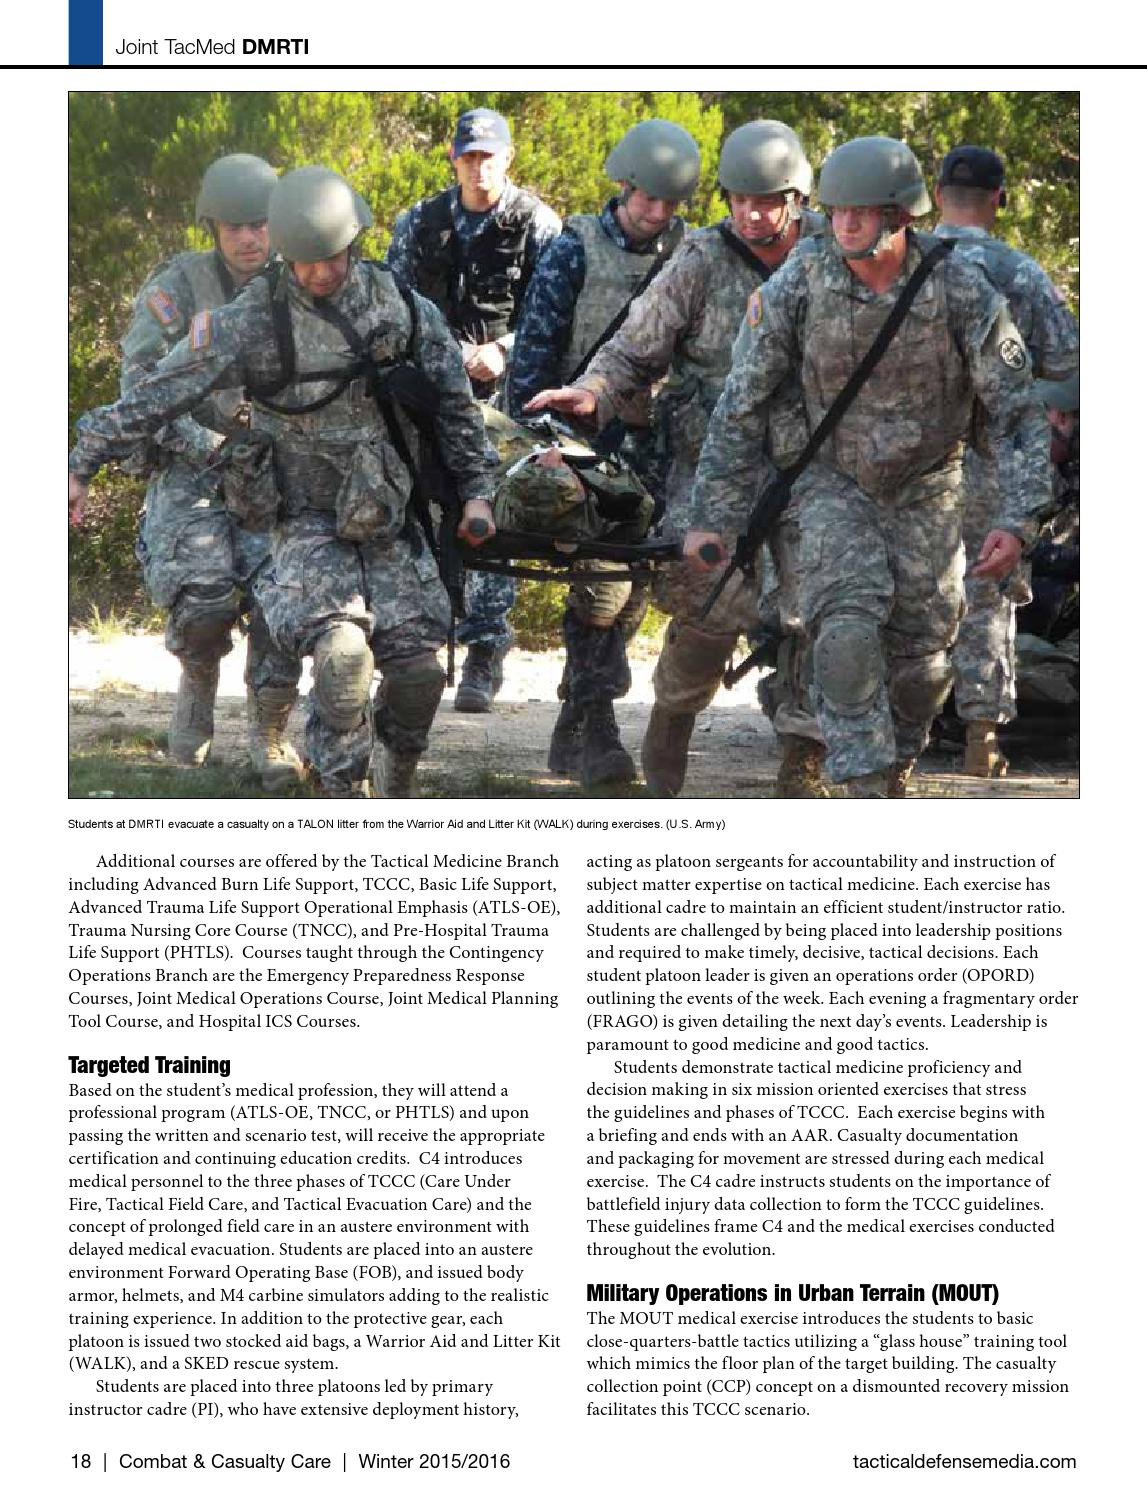 Combat Casualty Care Q4 2015 By Tactical Defense Media Issuu